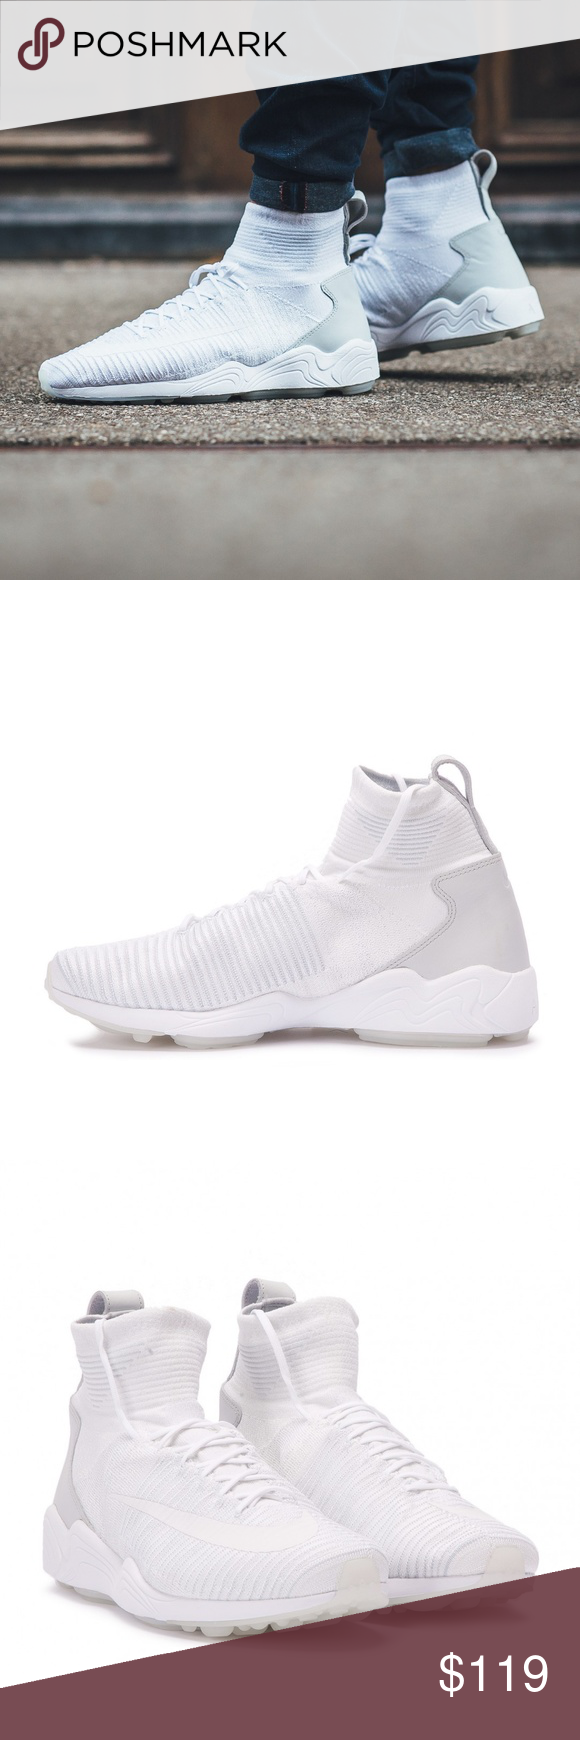 30cfcb865aa9 NIKE  Zoom Mercurial XI Flyknit Air White Soccer NEW IN BOX NIKE Zoom  Mercurial XI